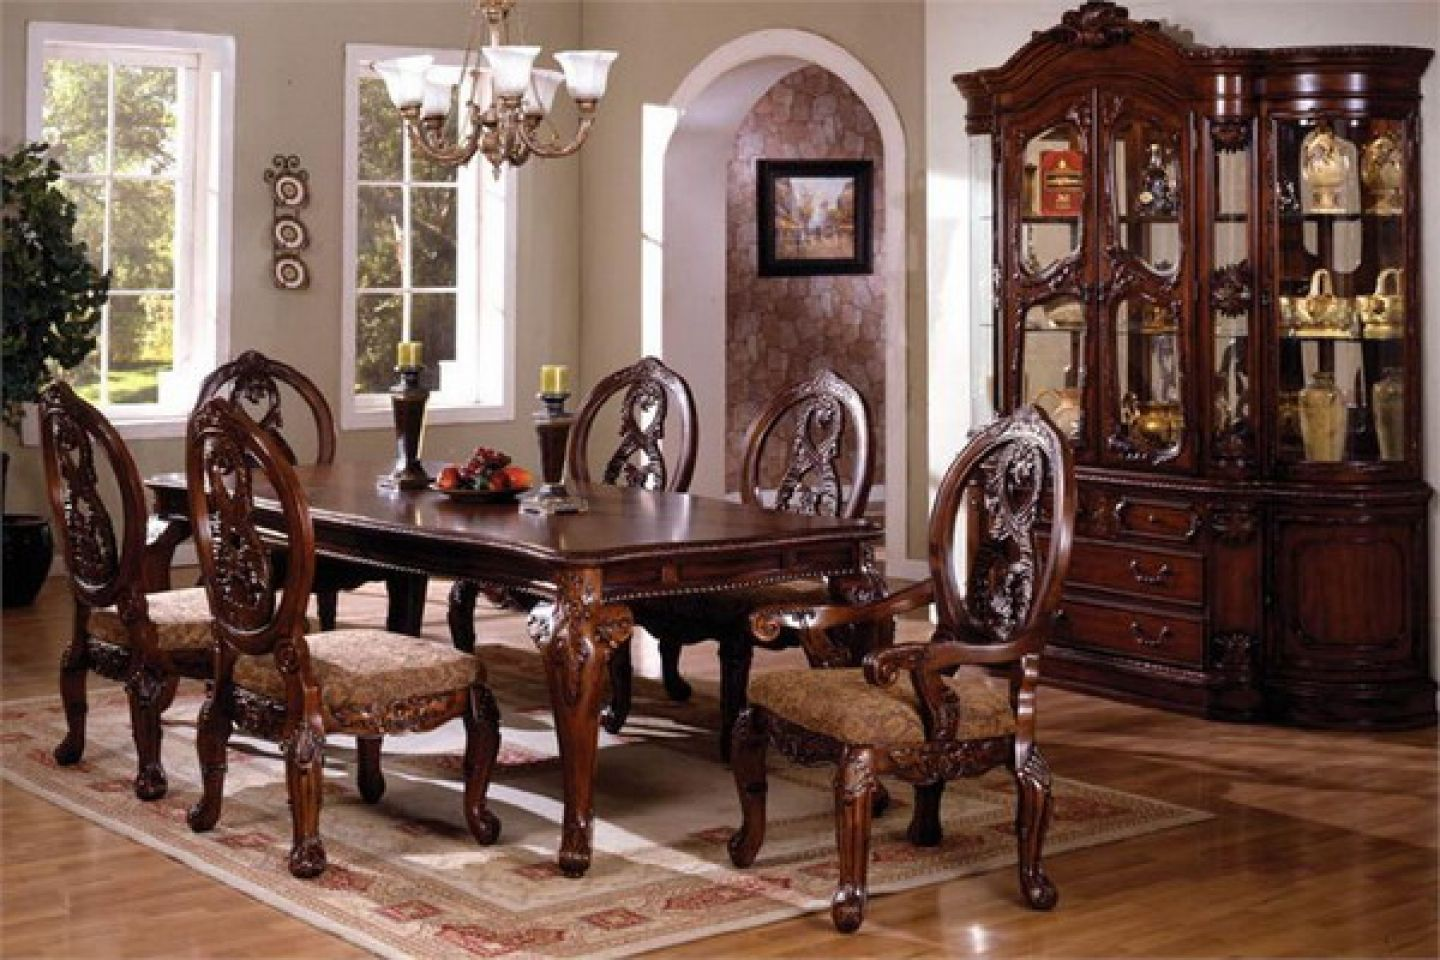 Traditional Wood Dining Tables the elegant traditional tuscany dining table set is the perfect